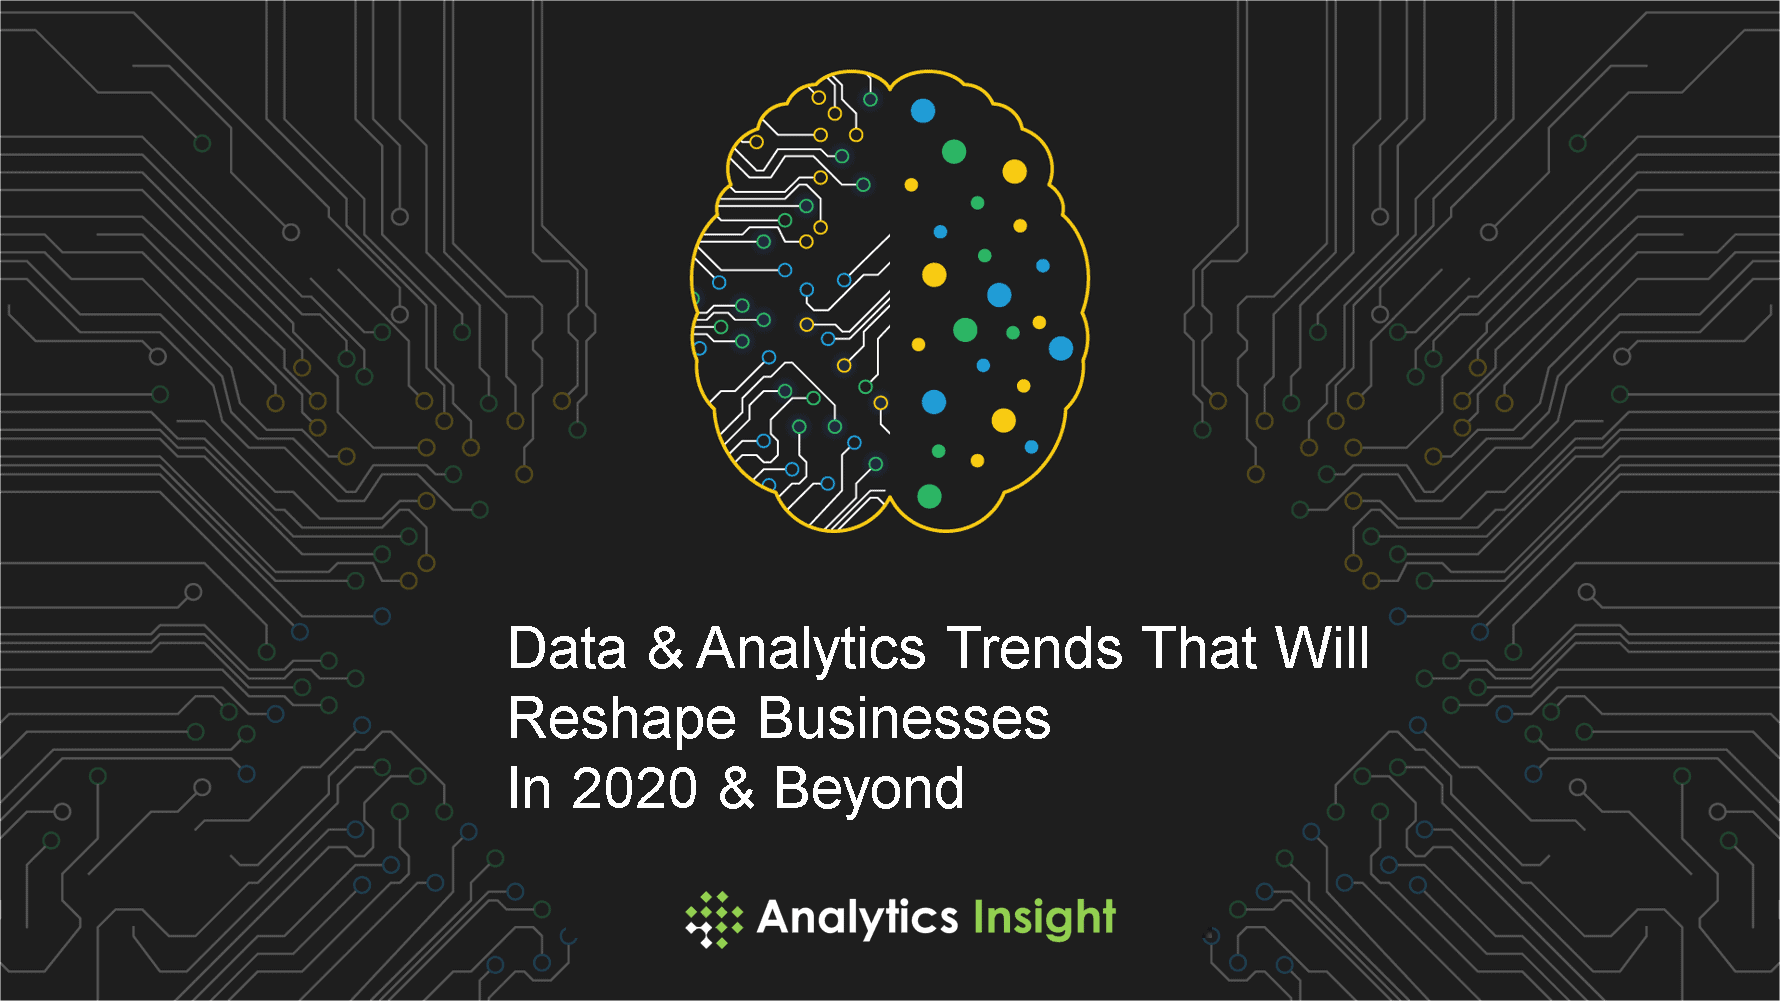 Business Trends 2020.Data Analytics Trends That Will Reshape Businesses In 2020